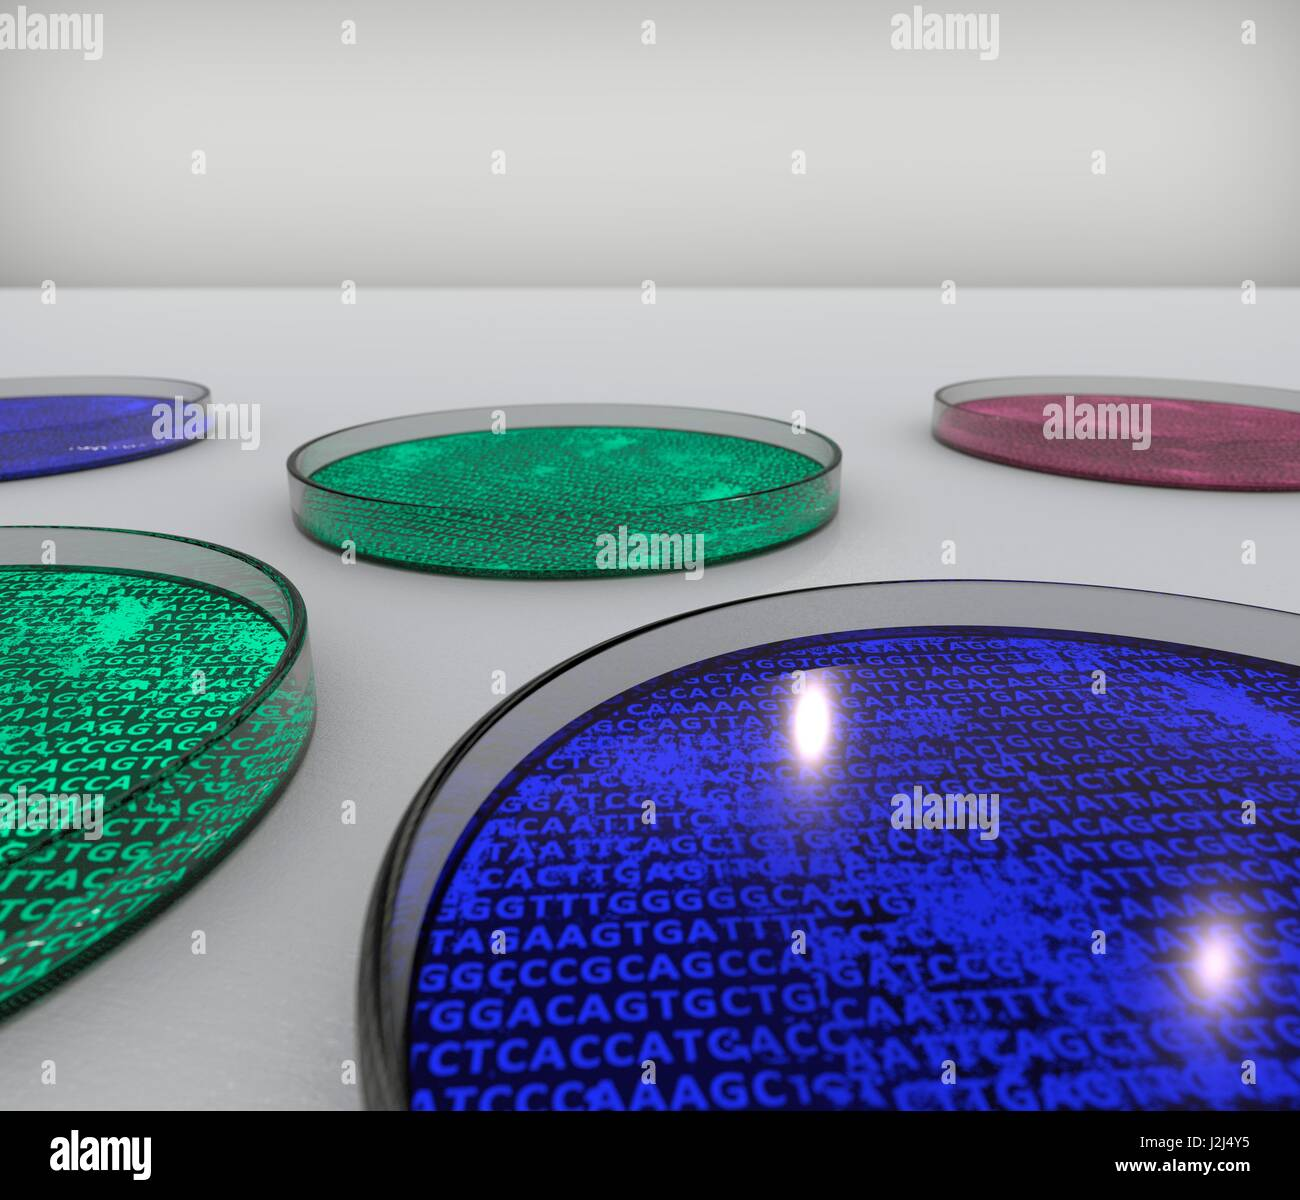 Conceptual image of cultures in petri dishes containing genetic material. Computer artwork. - Stock Image